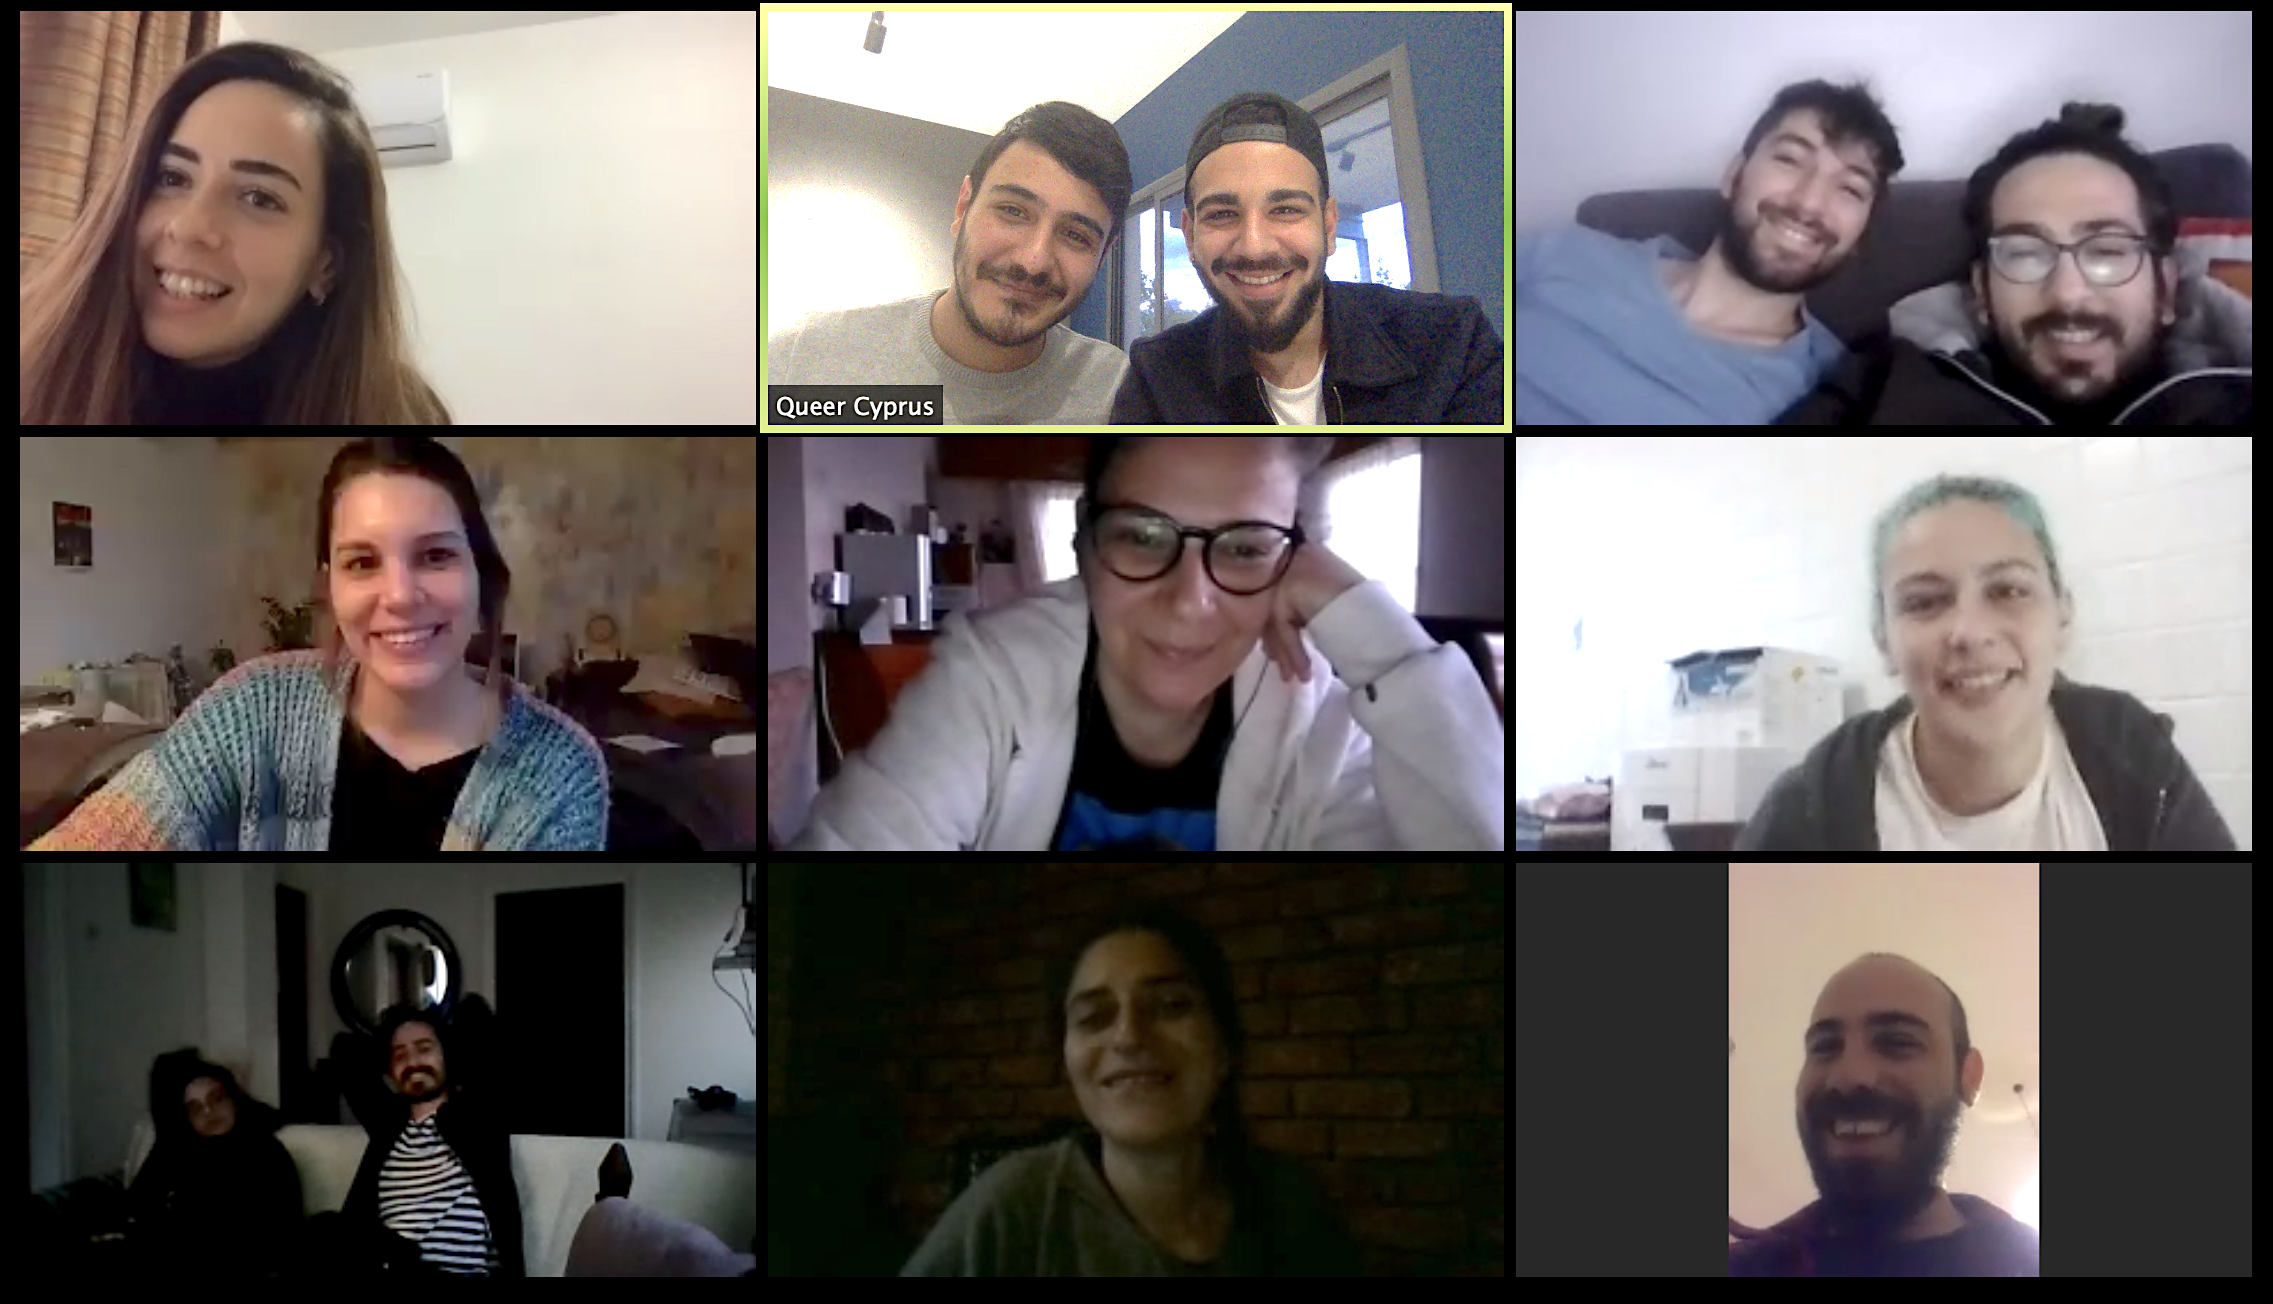 Queer Cyprus Association held a 'Social Work' Webinar